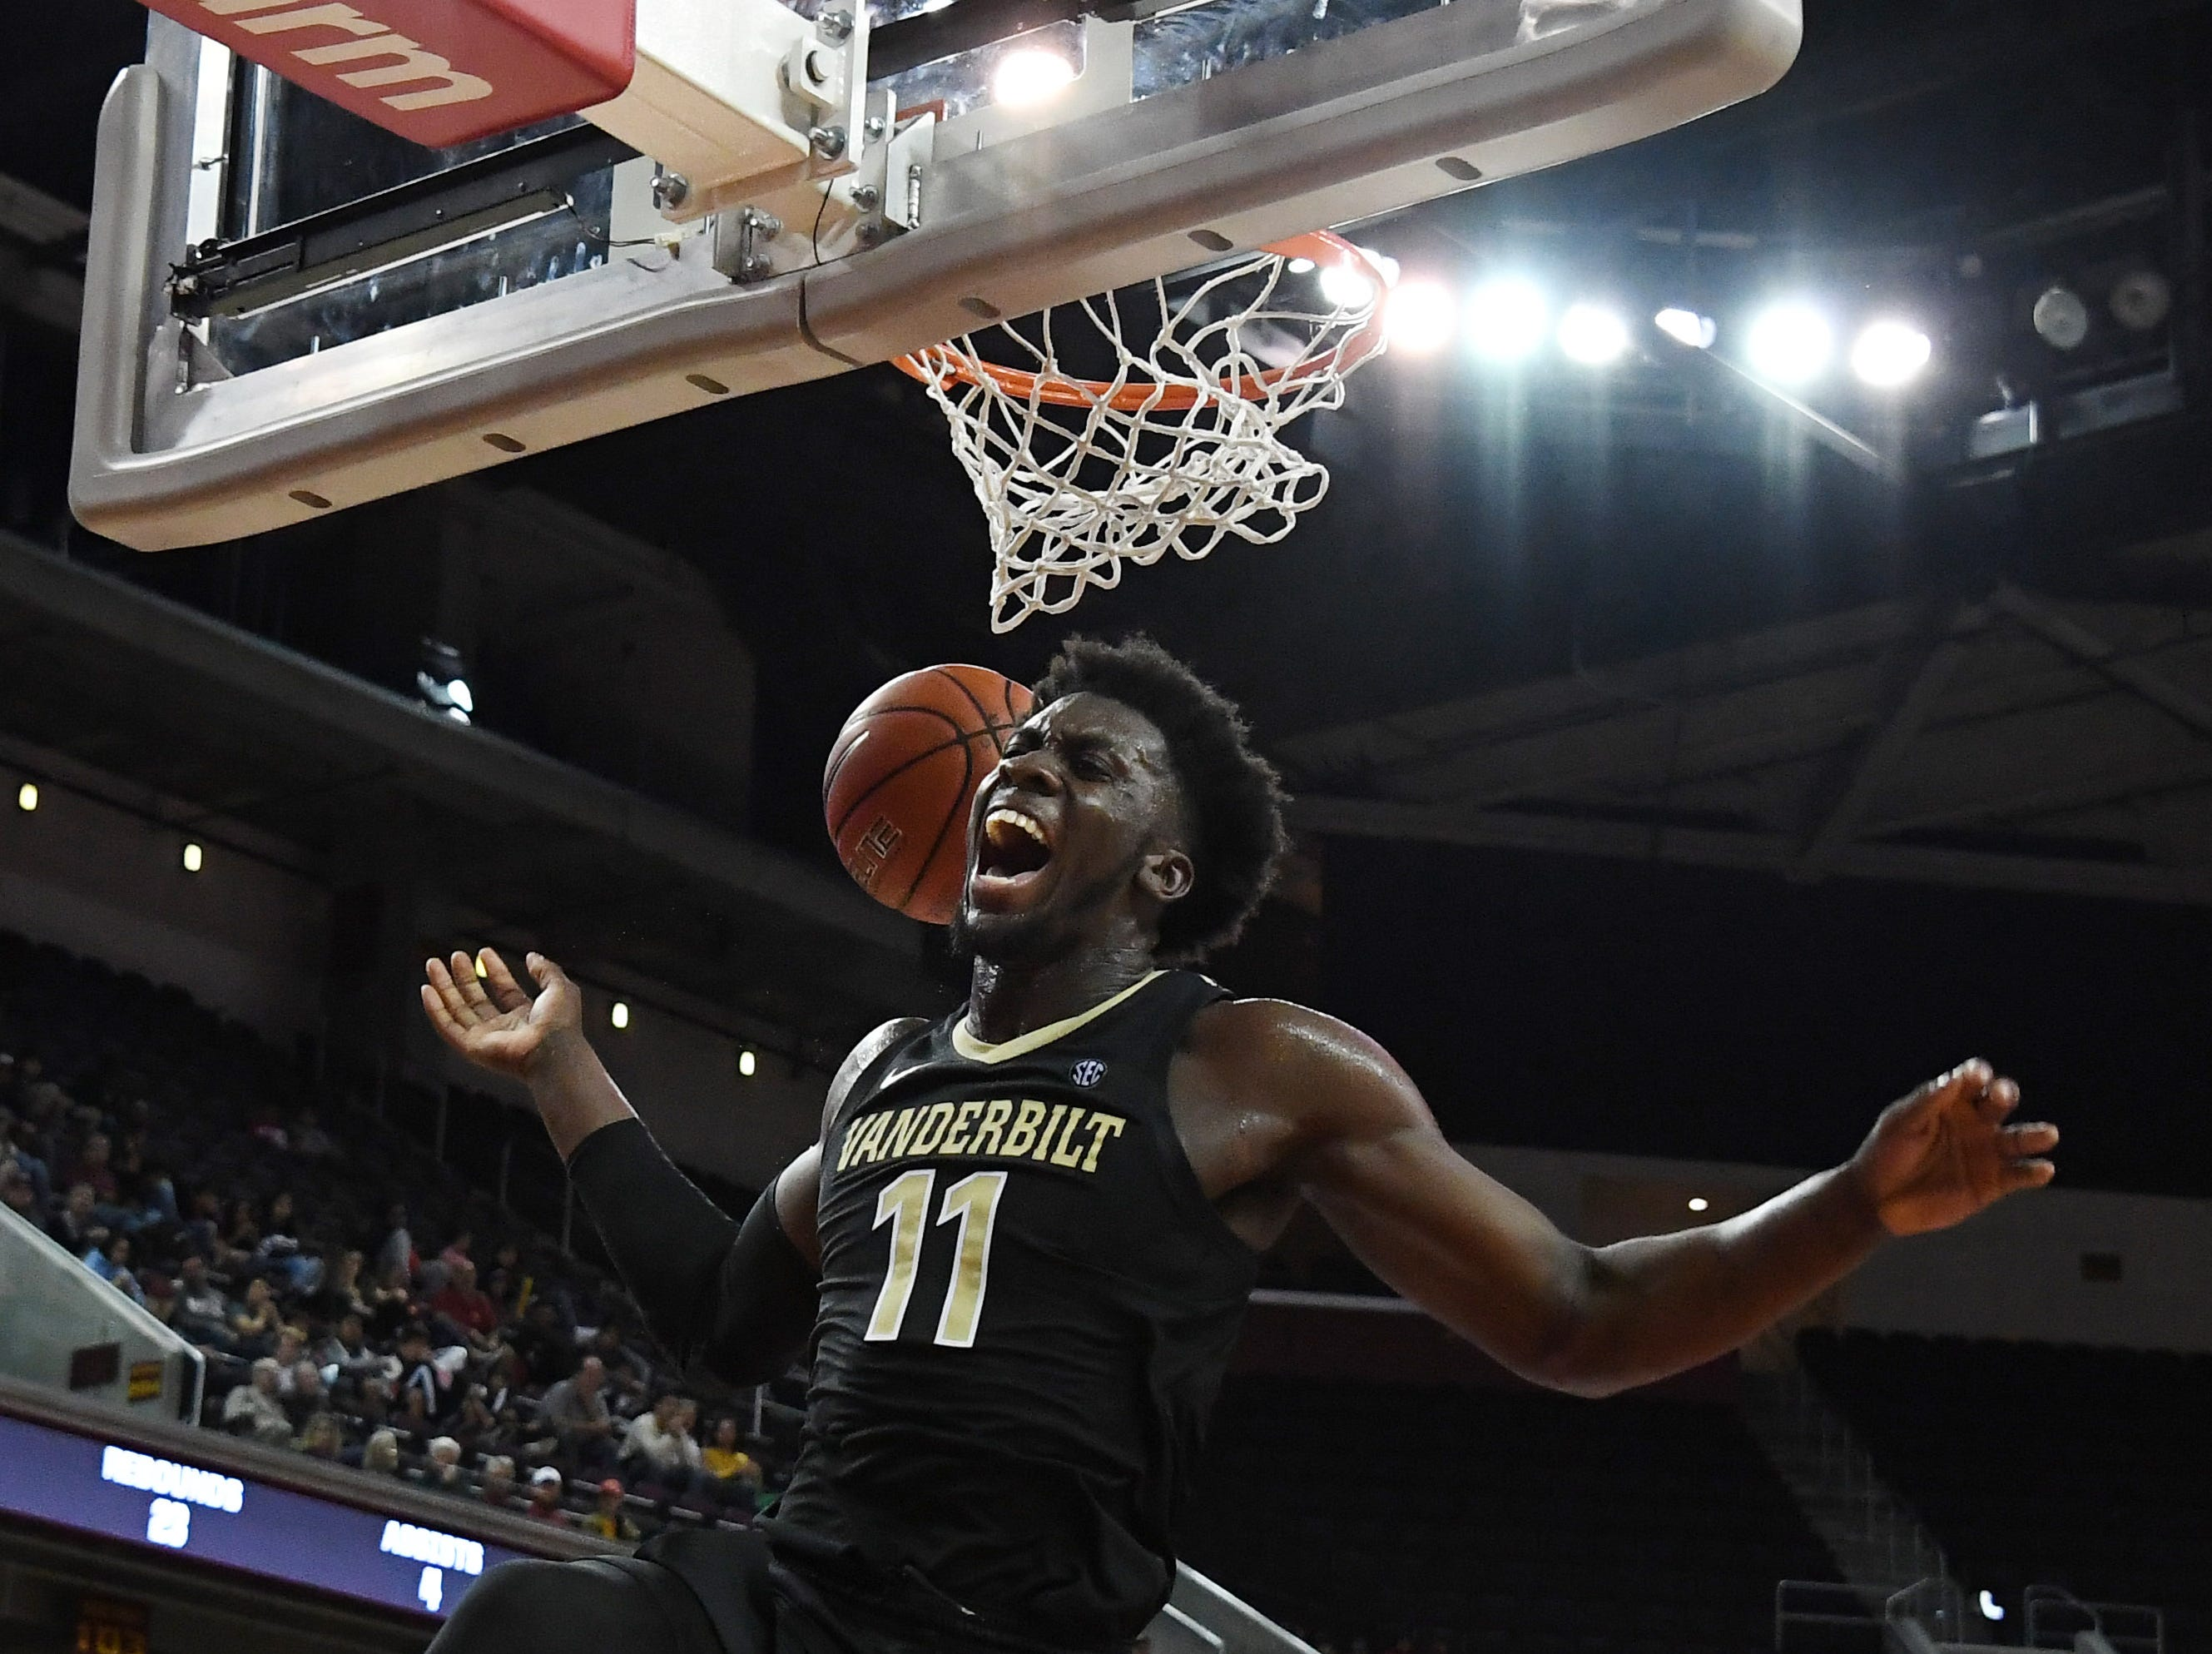 Nov. 11: Vanderbilt Commodores forward Simisola Shittu (11) dunks against the Southern California Trojans in the first half at Galen Center.